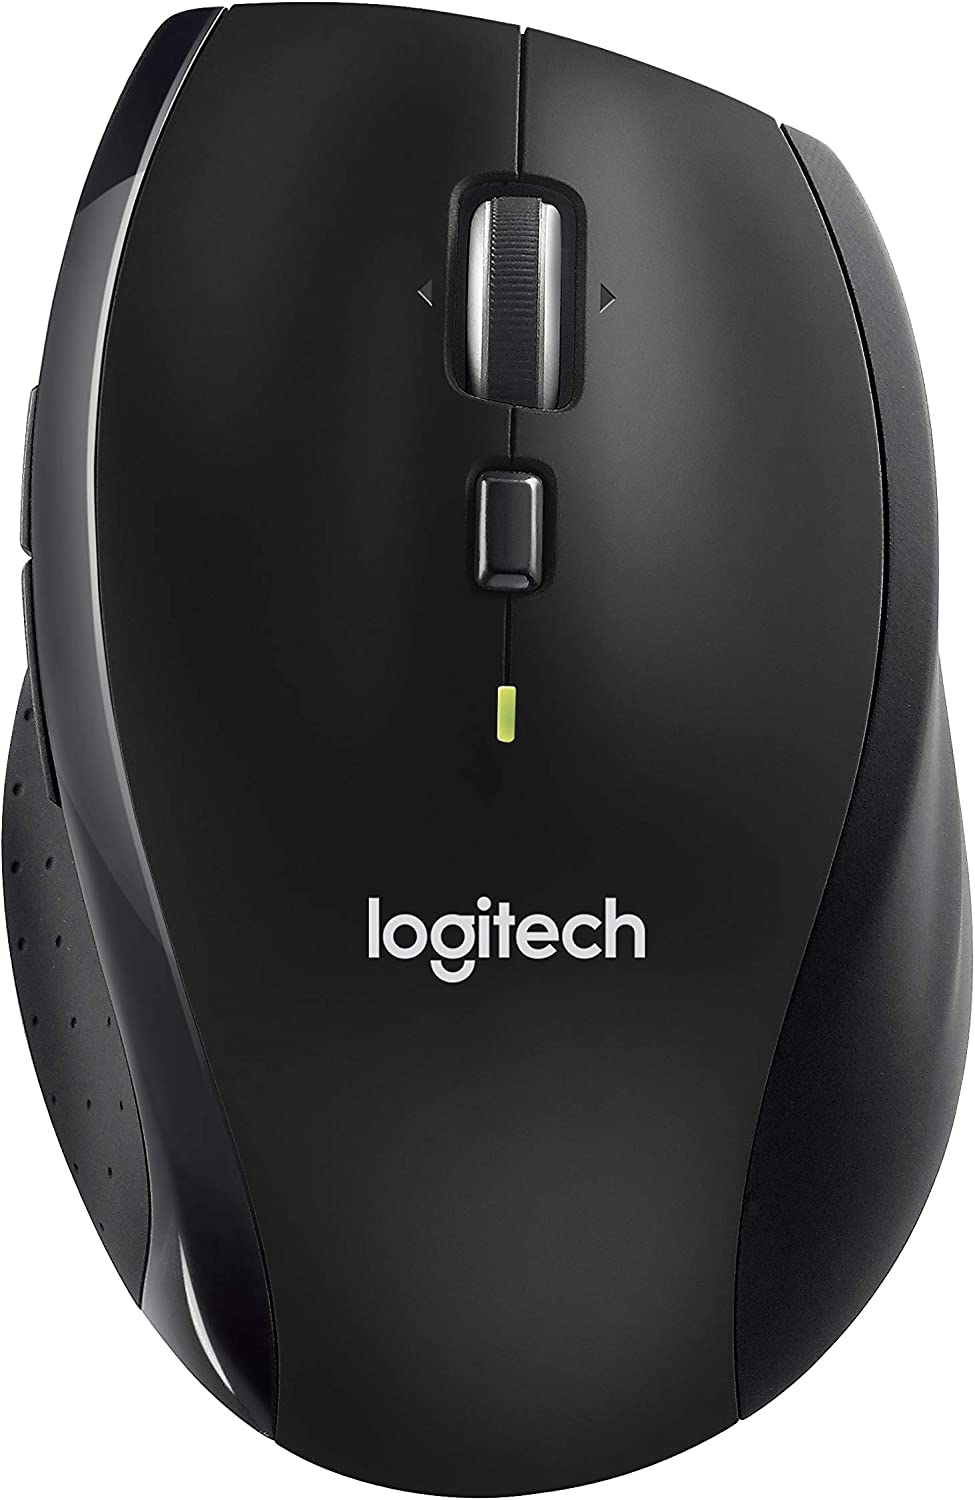 Logitech M705 Wireless Marathon Mouse for PC - Long 3 Year Battery Life, Ergonomic Shape with Hyper-Fast Scrolling and USB Unifying Receiver for Computer and Laptop - Black